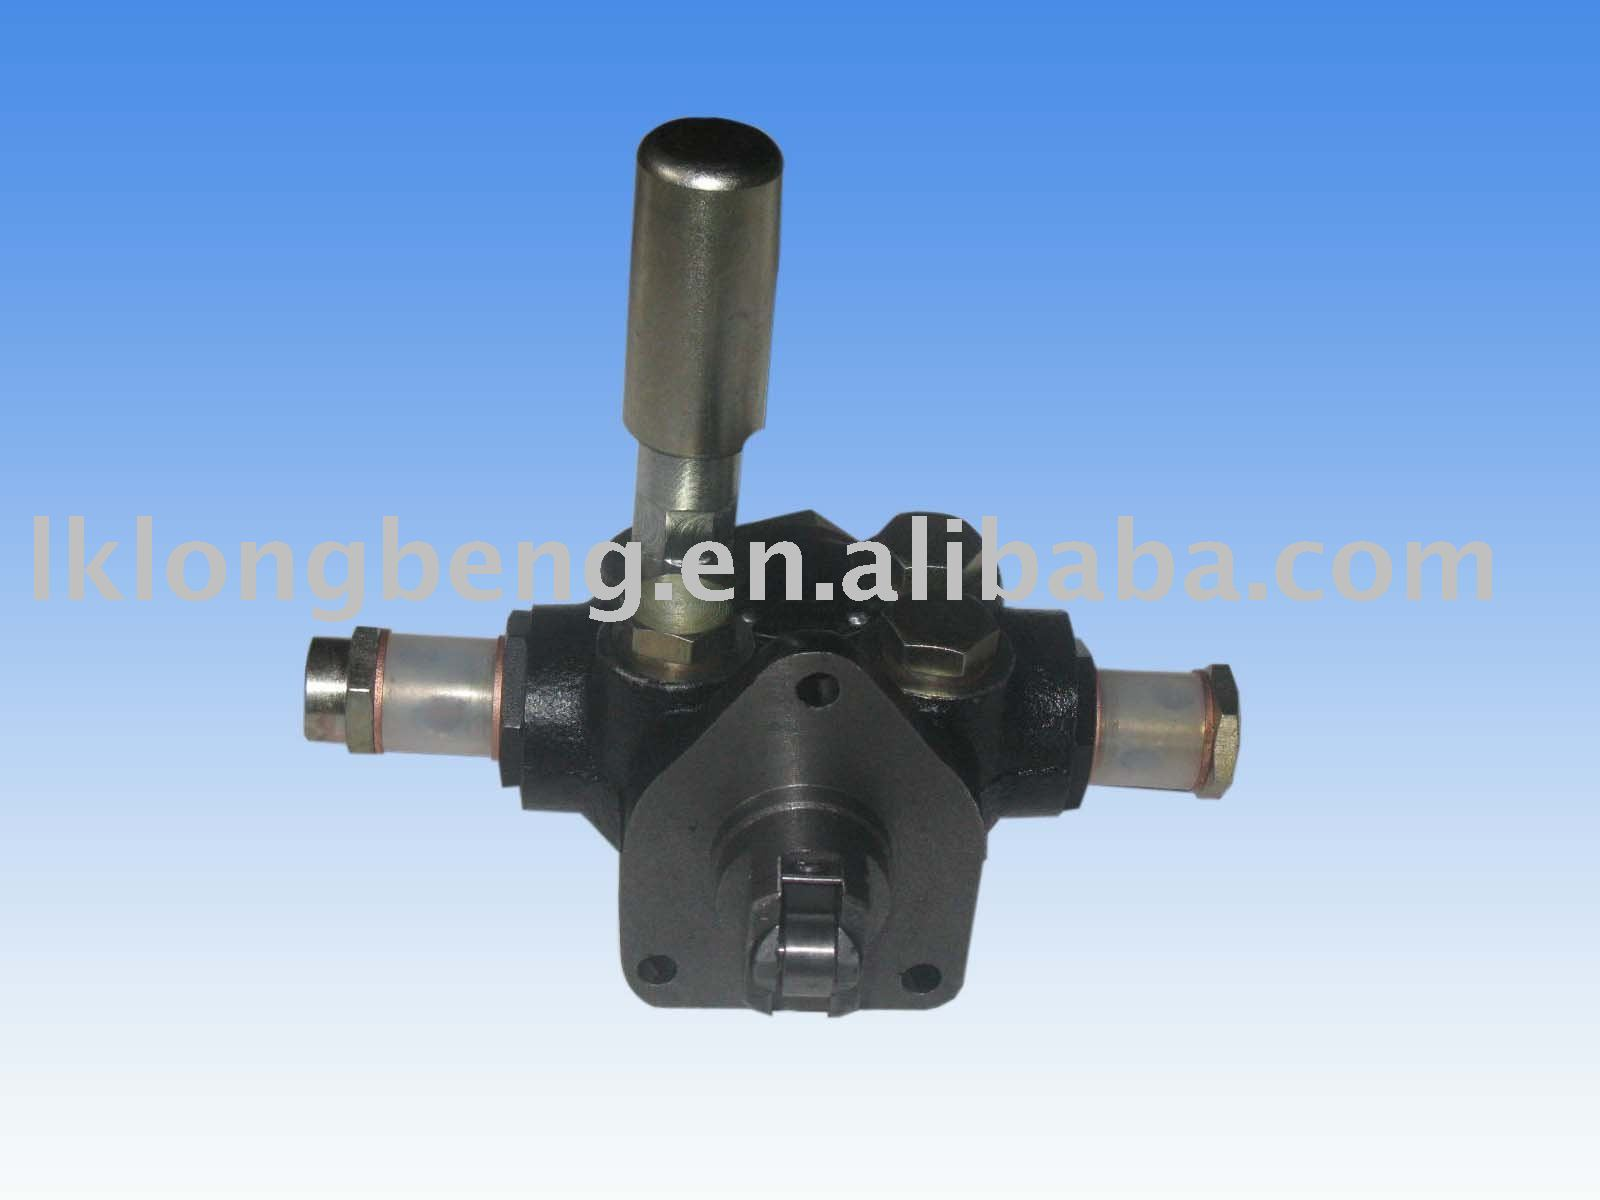 S401 Fuel supply pump